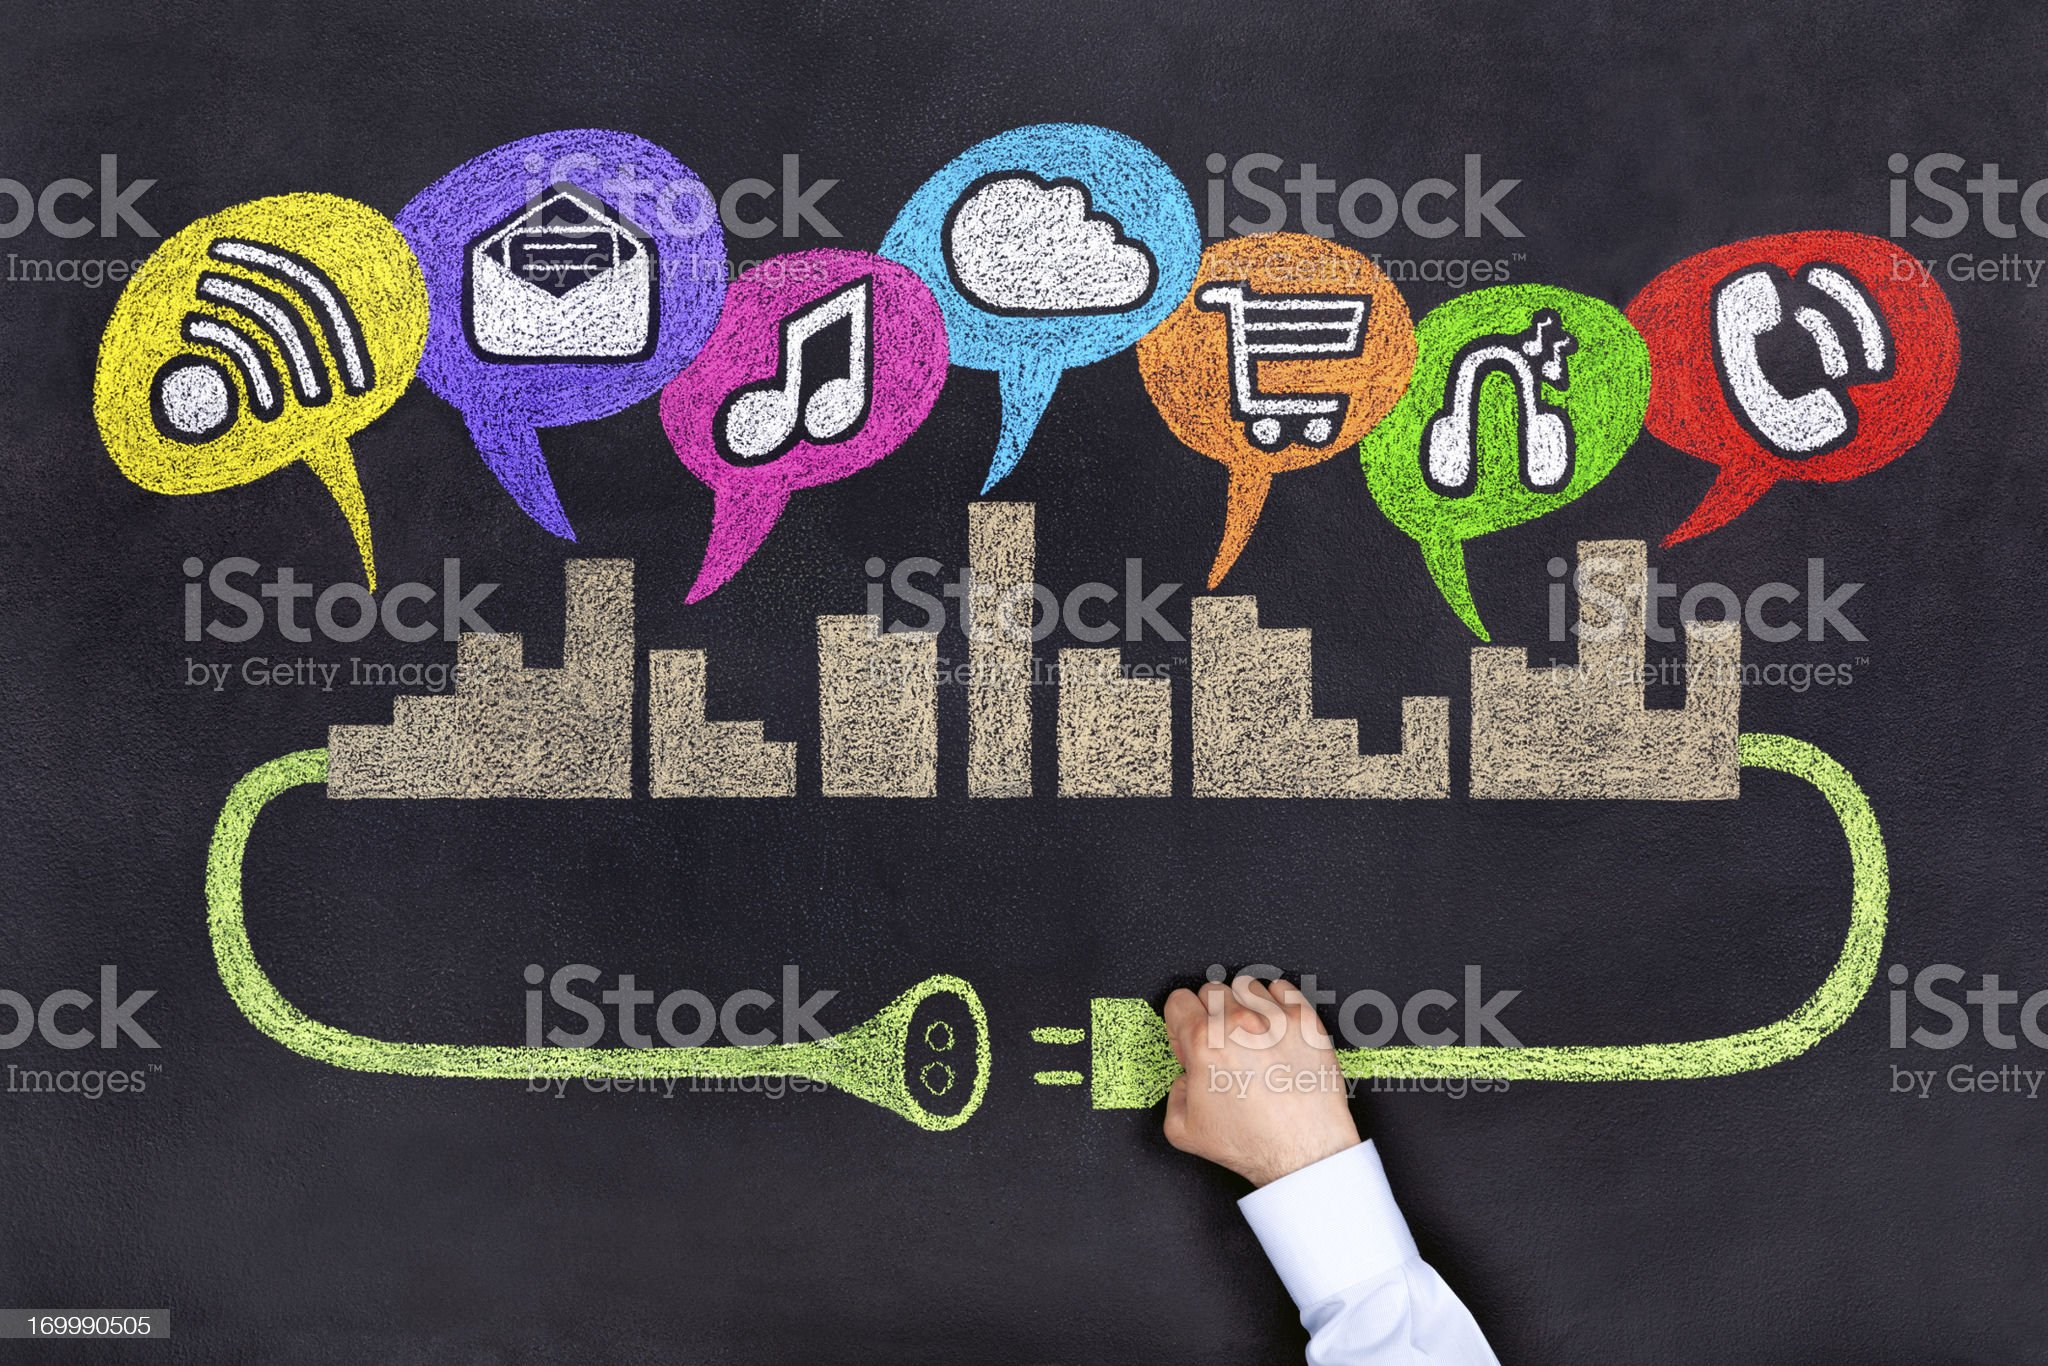 City Socical Network royalty-free stock photo